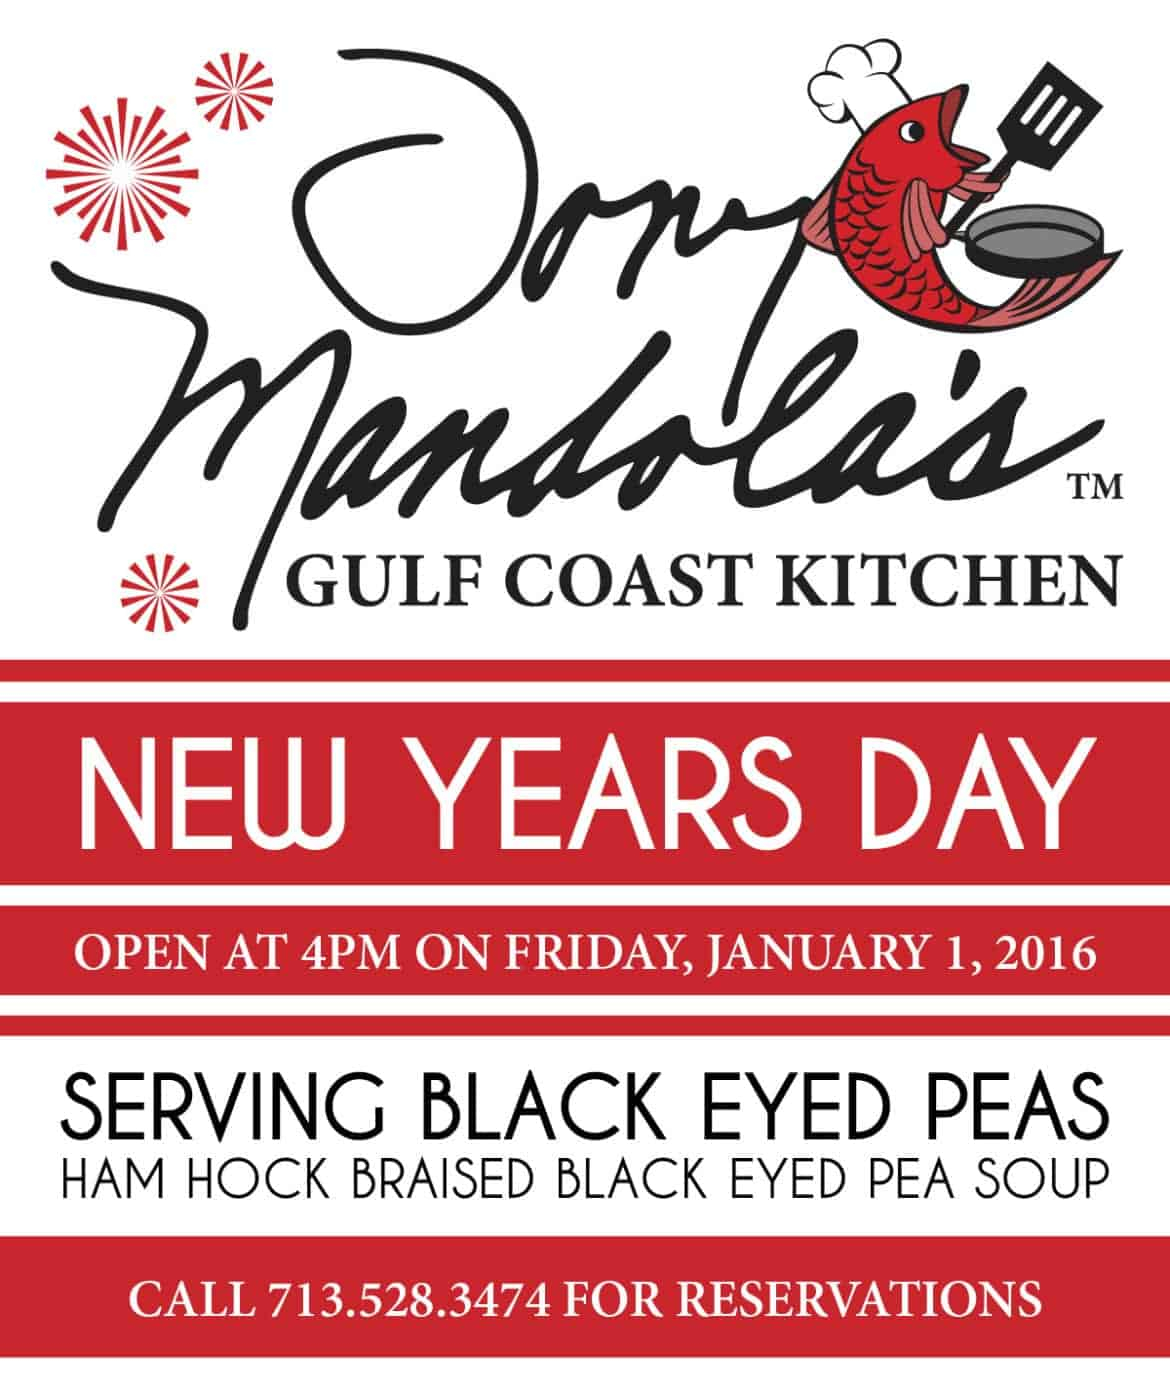 New Years Day at Tony Mandola's Gulf Coast Kitchen